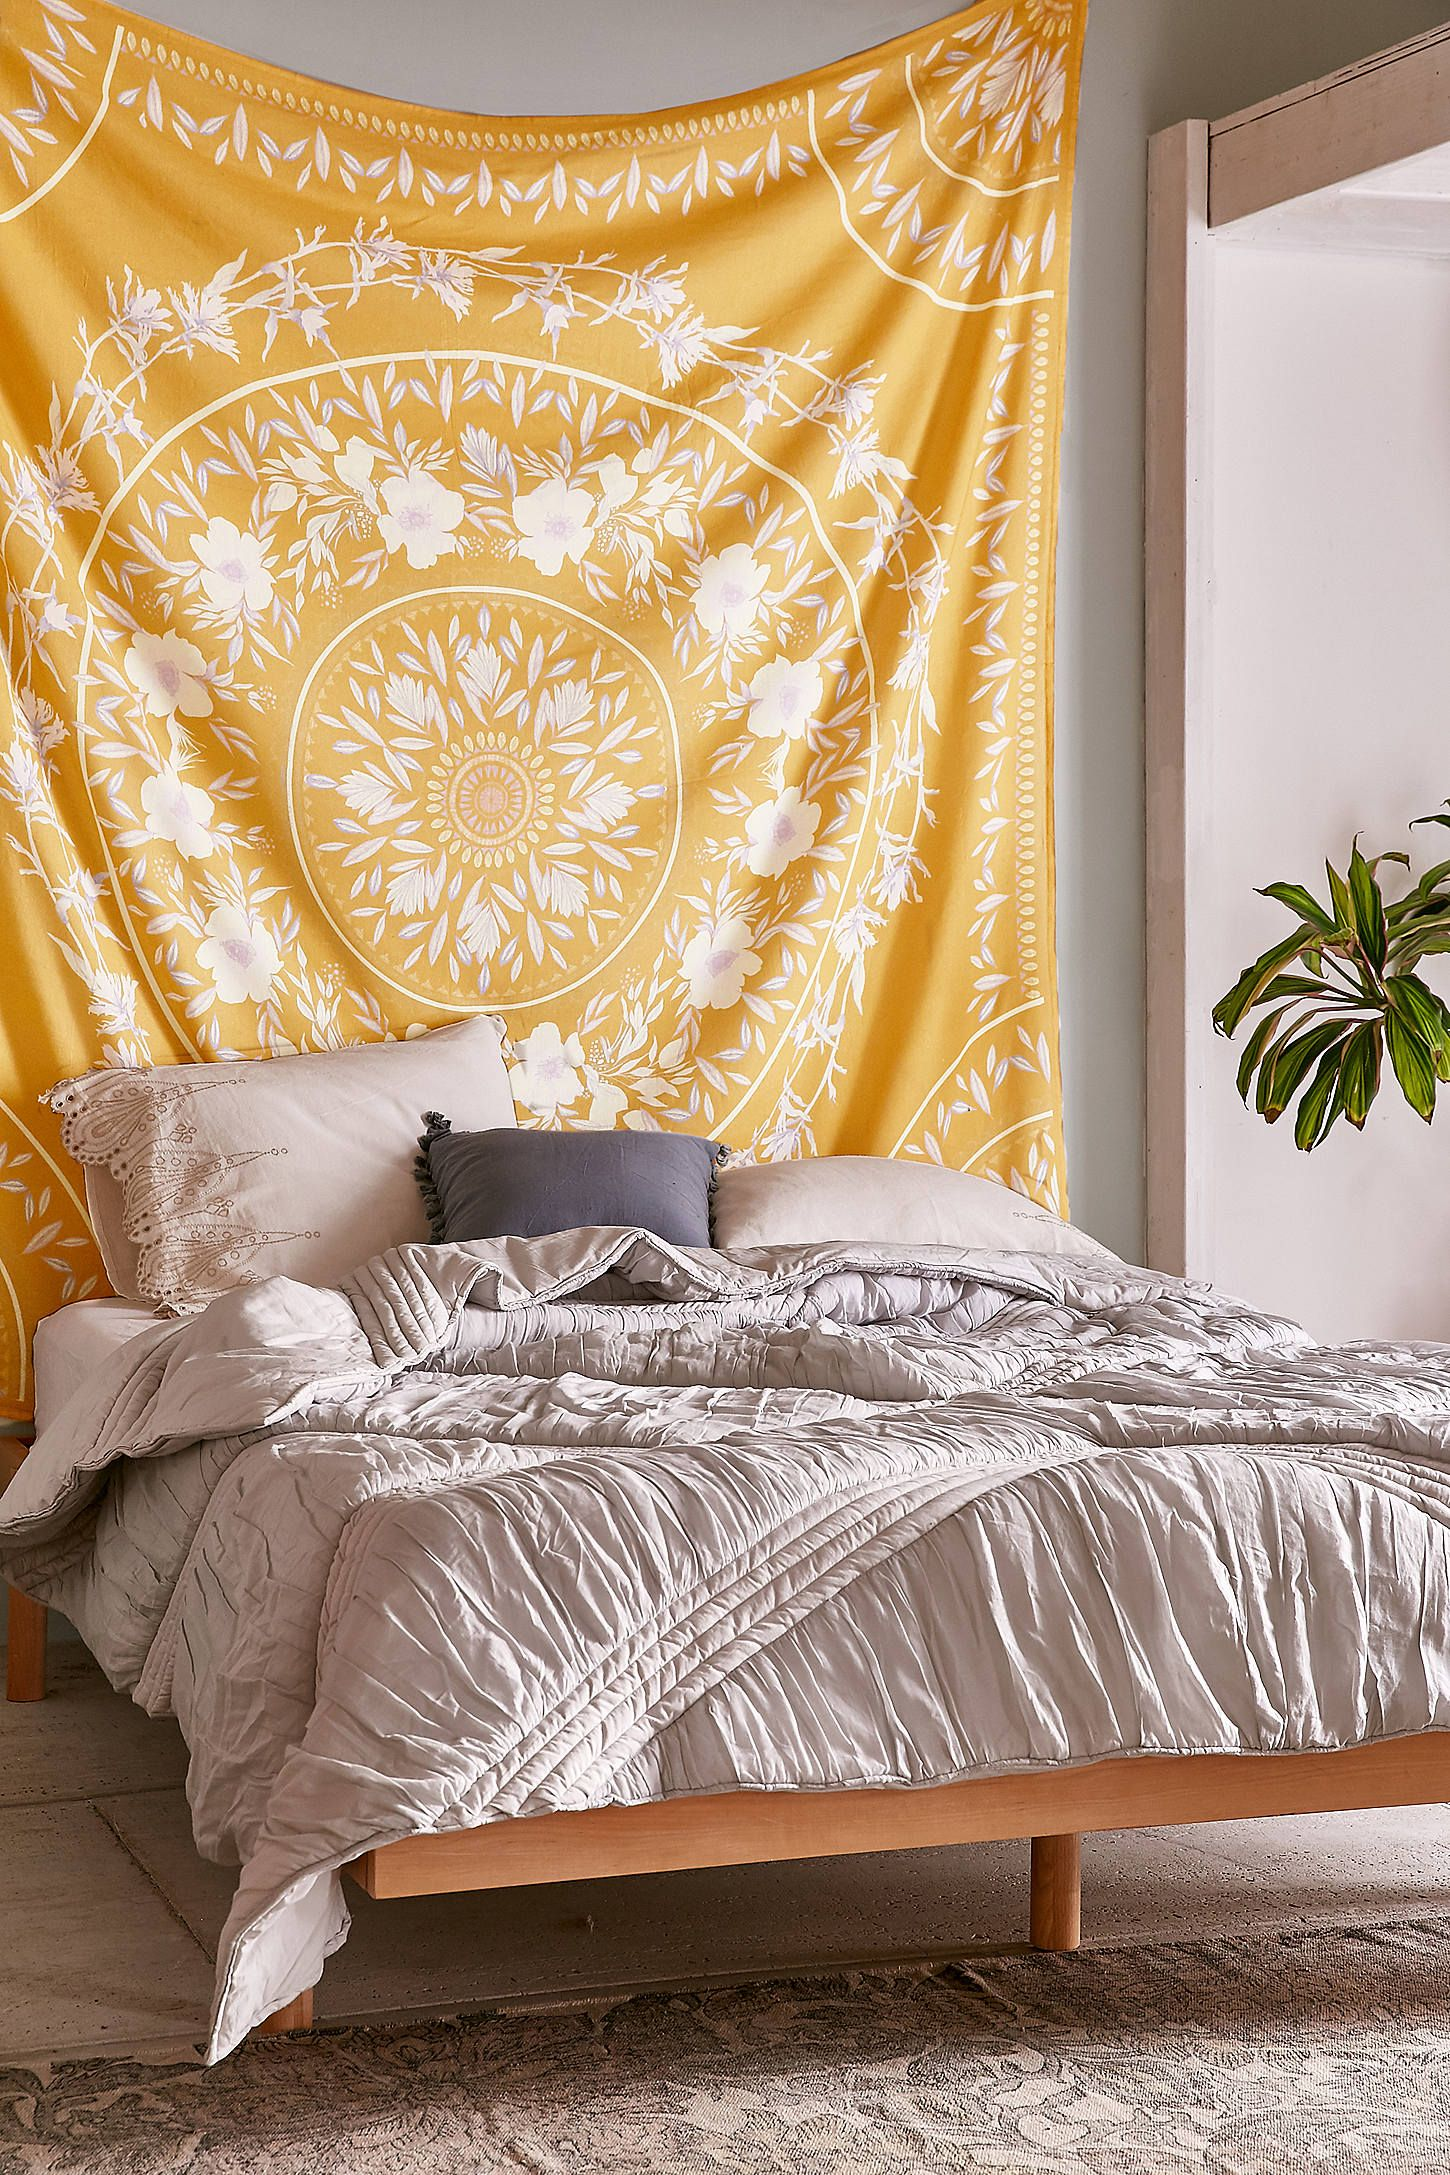 College Aesthetic Dorm Room Yellow